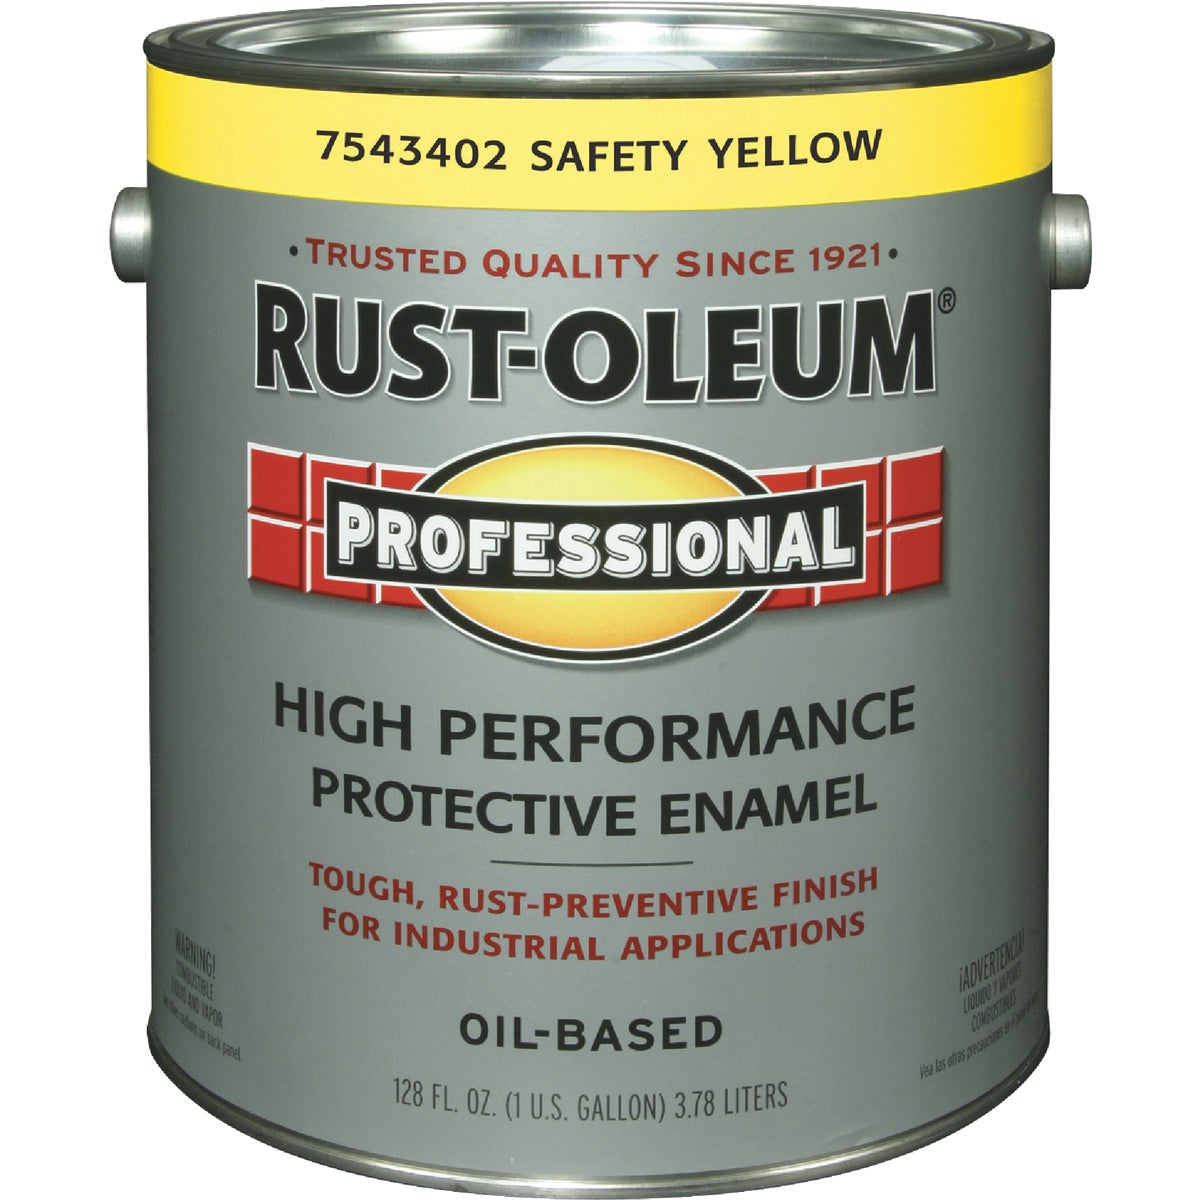 SAFETY YELLOW PRO ENAMEL - 7543-402 by Rustoleum